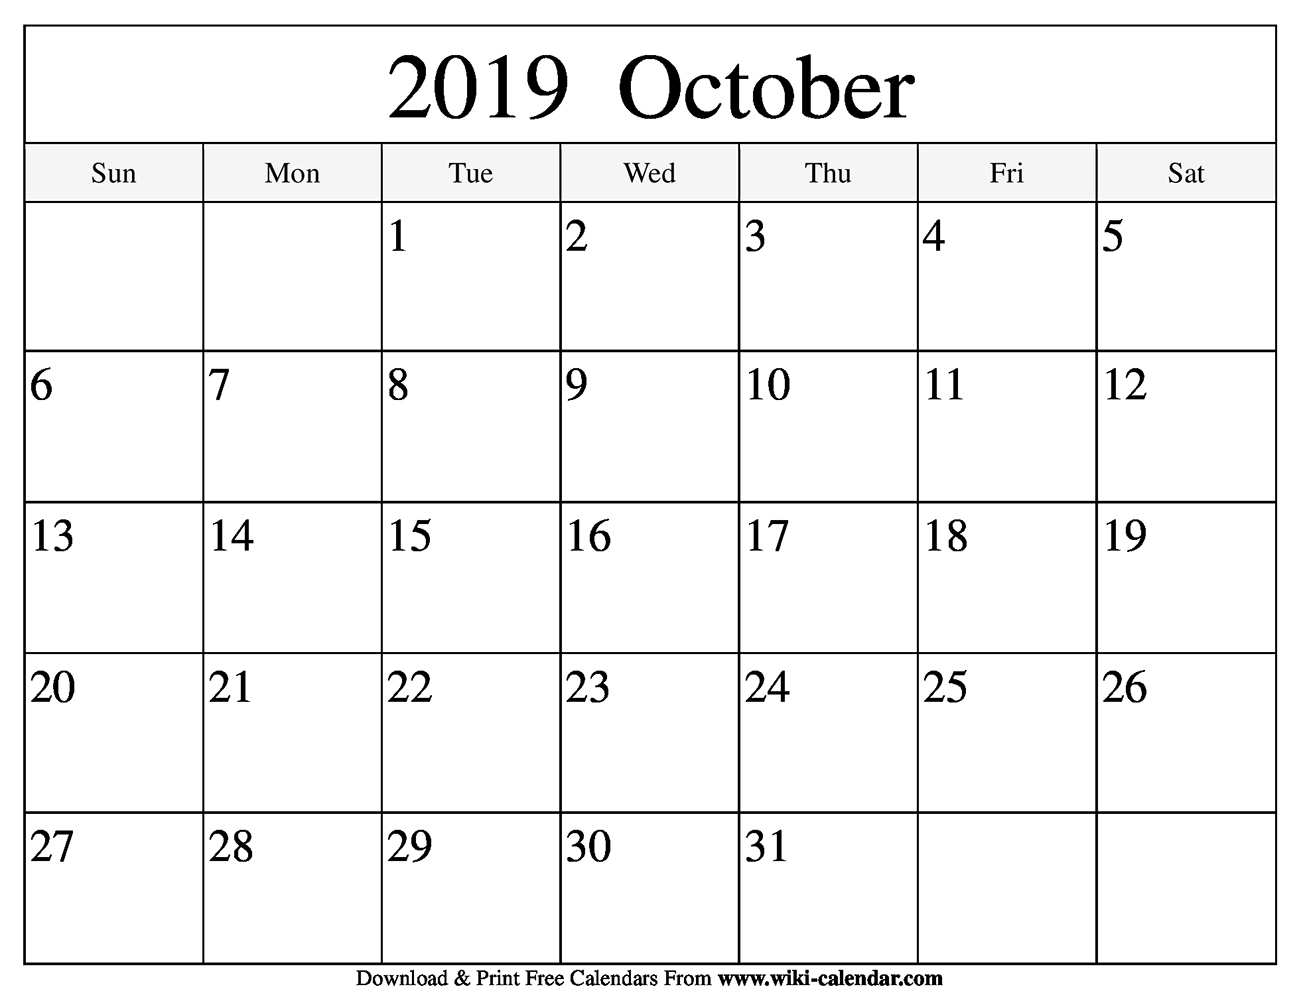 Blank October 2019 Calendar Printable regarding Free Printable Scary October Calendar 2019